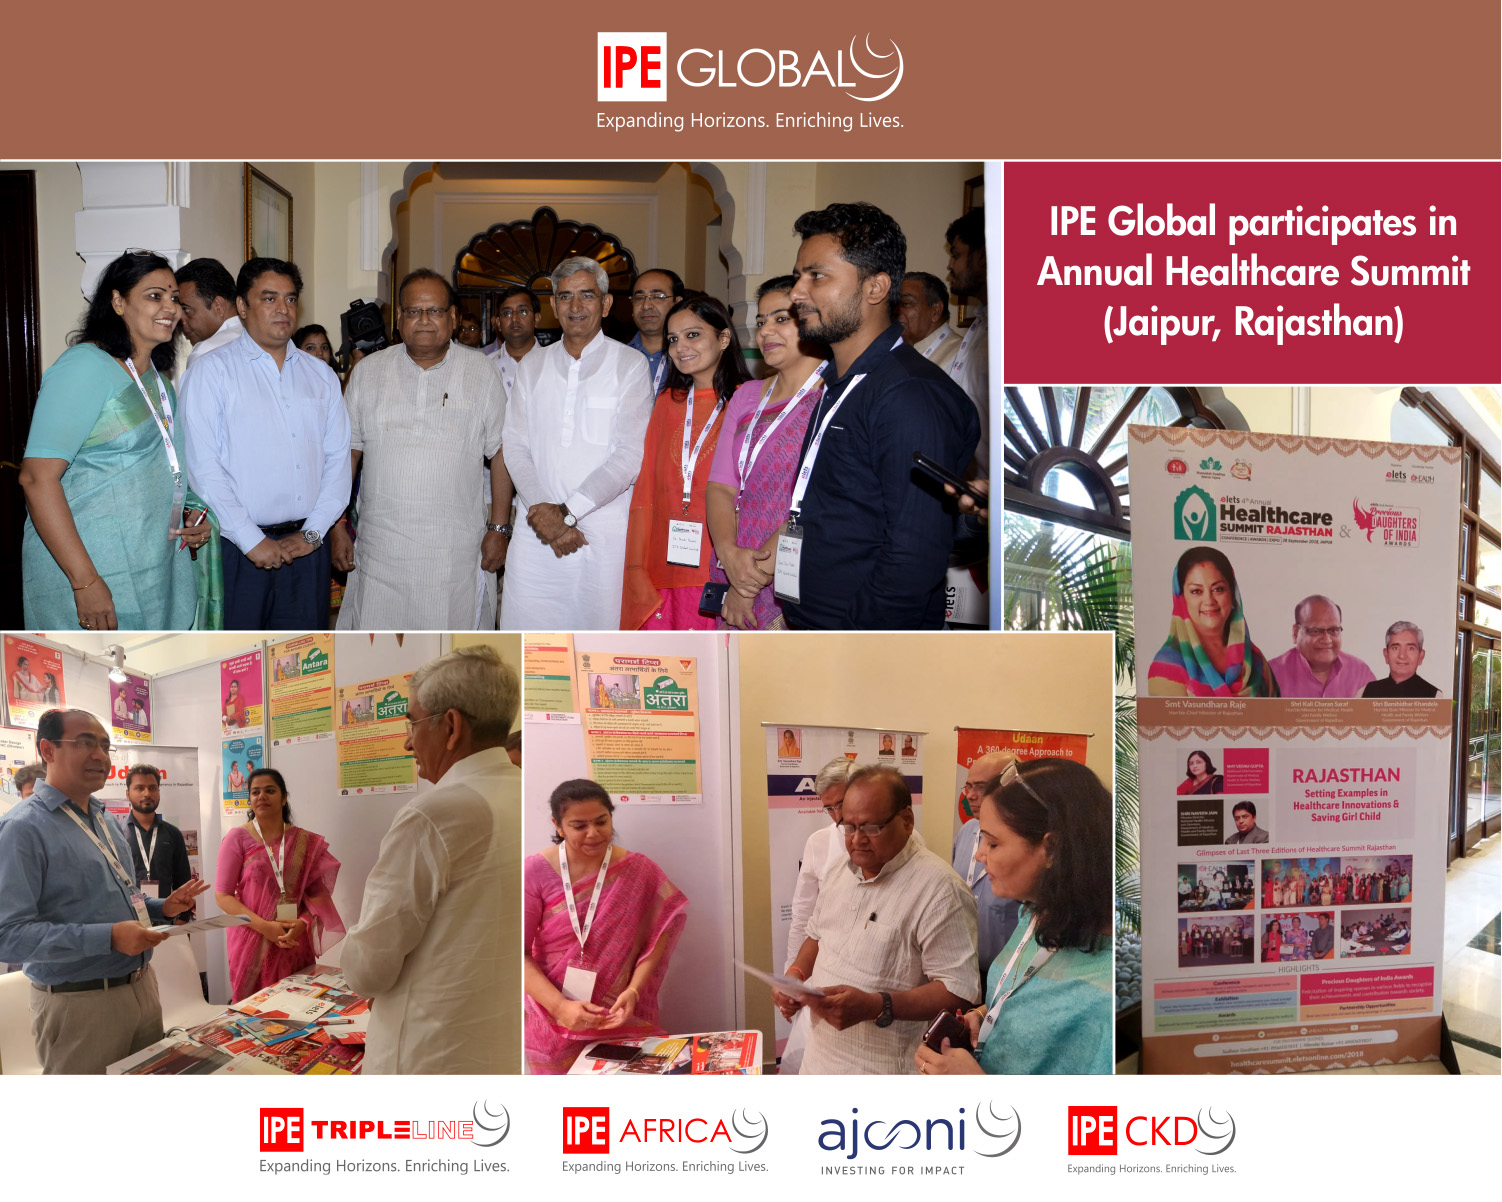 IPE Global participates in Annual Healthcare Summit held in Jaipur